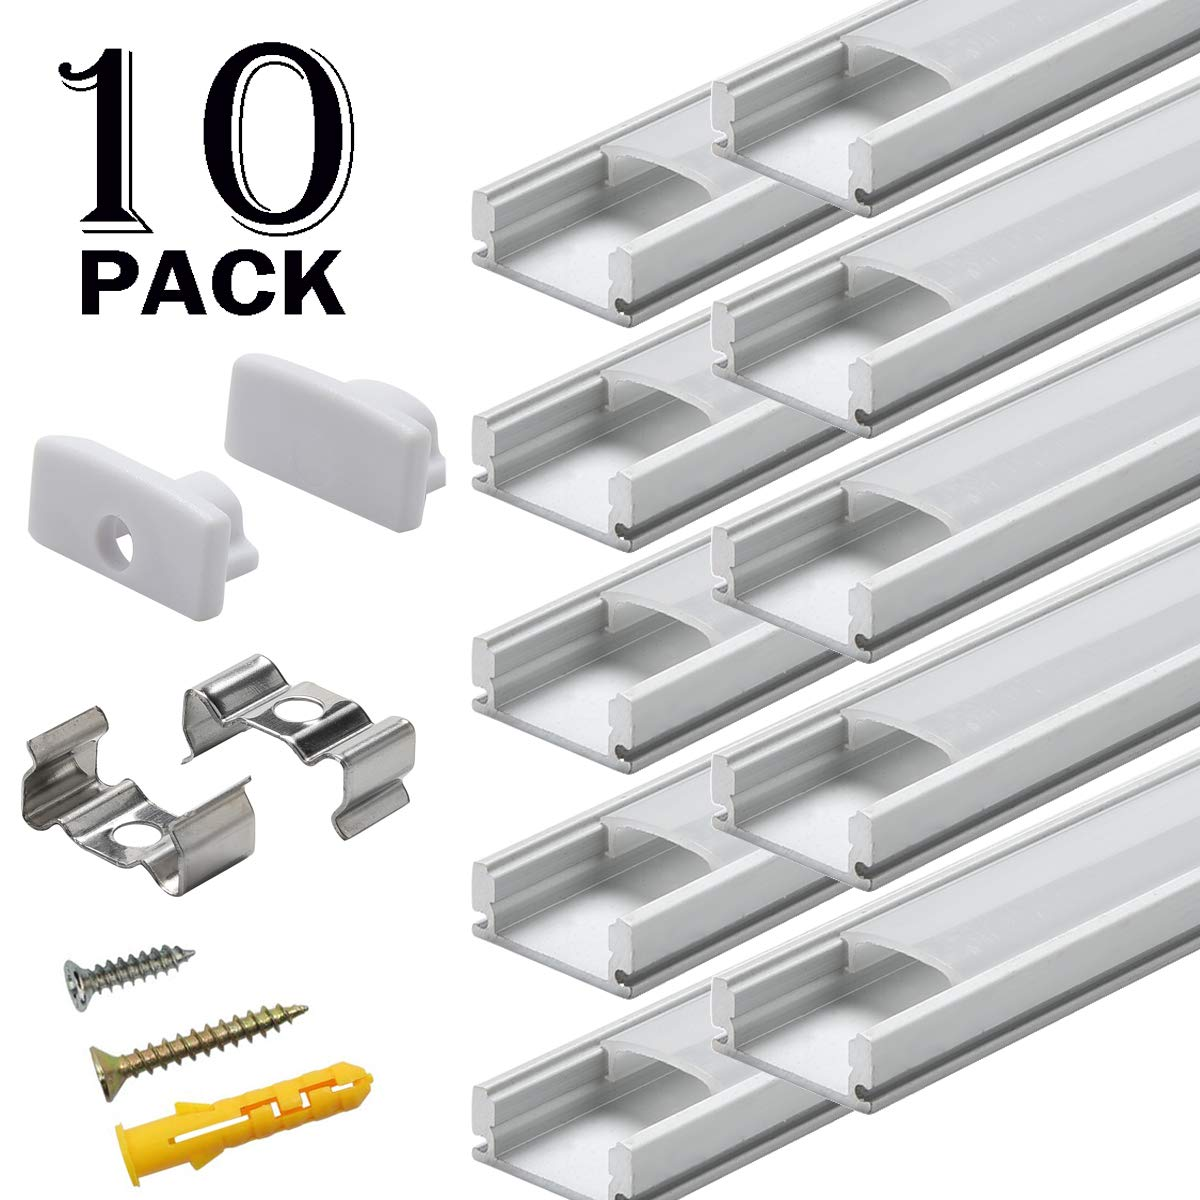 Starlandled 10-Pack Aluminum Channel for LED Strip Lights Installation,Easy to Cut,Professional Look,U-Shape LED Cover Diffuser Track with Complete Mounting Accessories for Easy Installation by StarlandLed